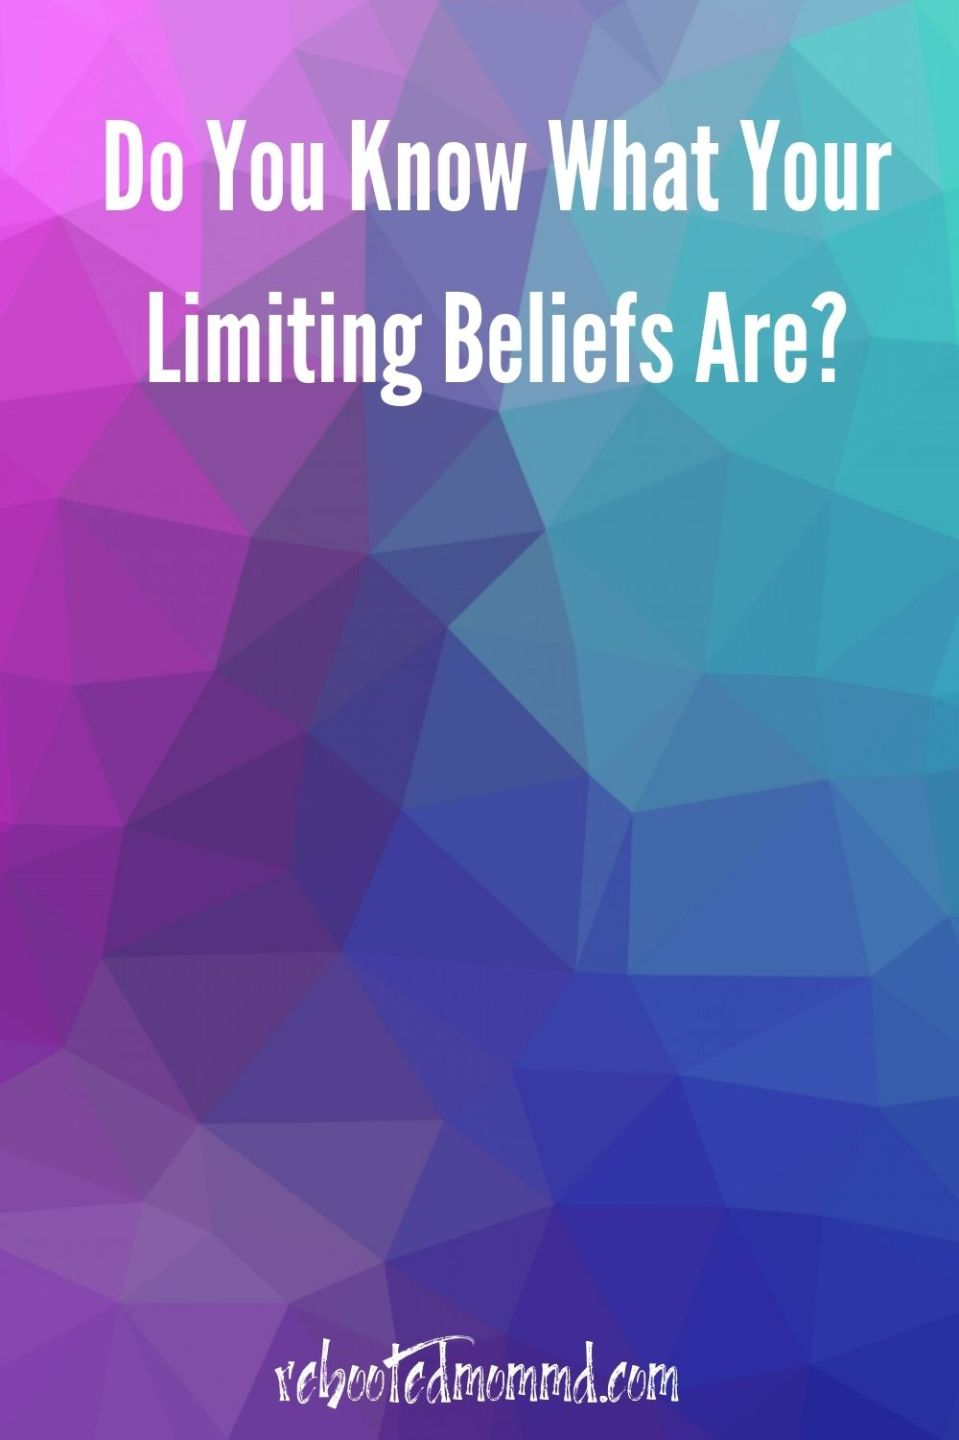 Do You Know What Your Limiting Beliefs Are?